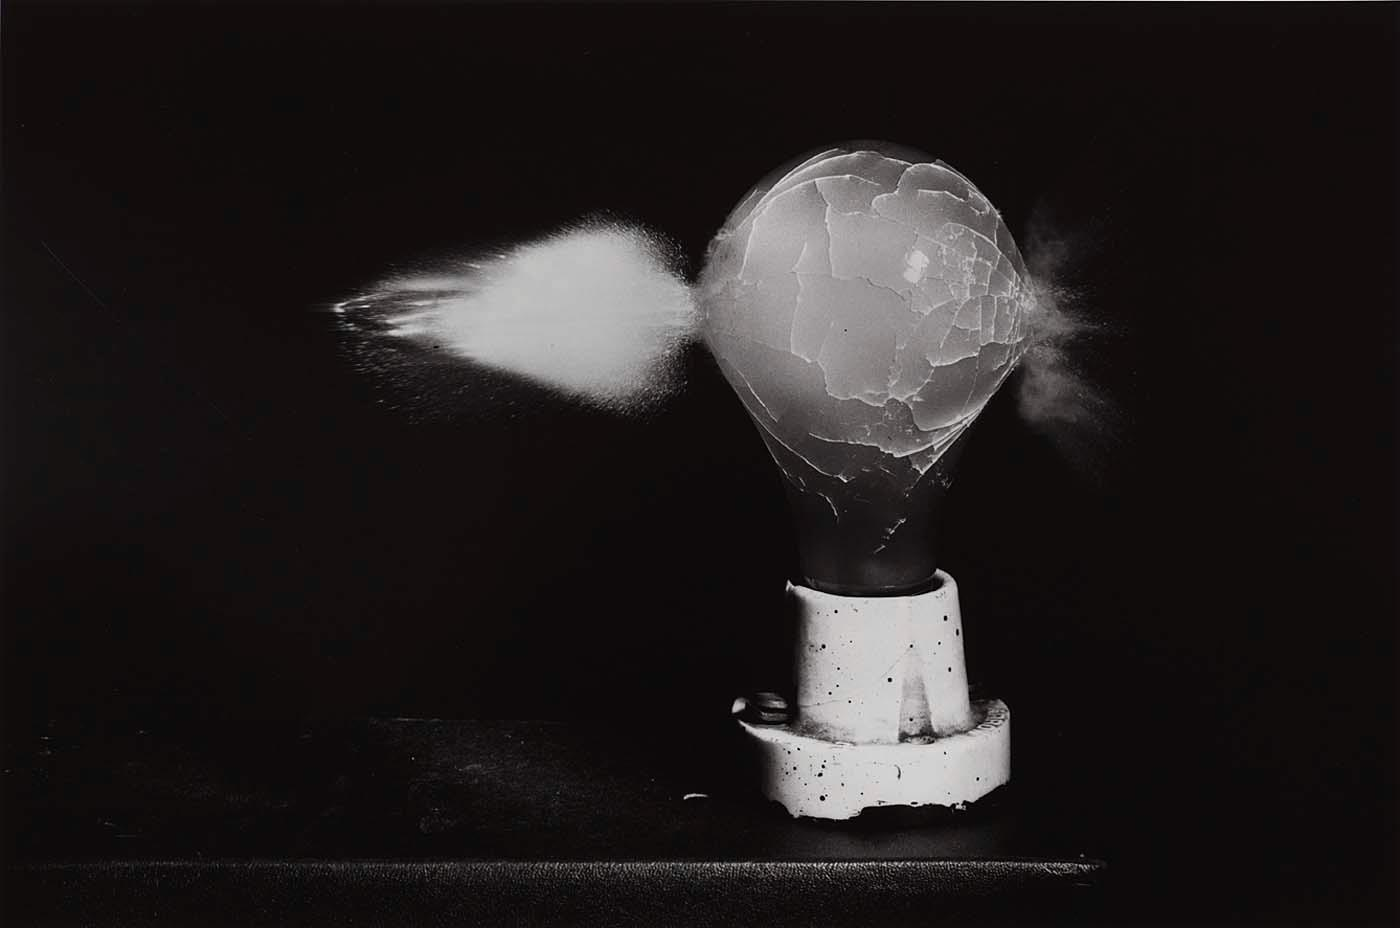 Wikioo.org - The Encyclopedia of Fine Arts - Painting, Artwork by Harold E Edgerton - Death of a Lightbulb (fourth photo in sequence of four)